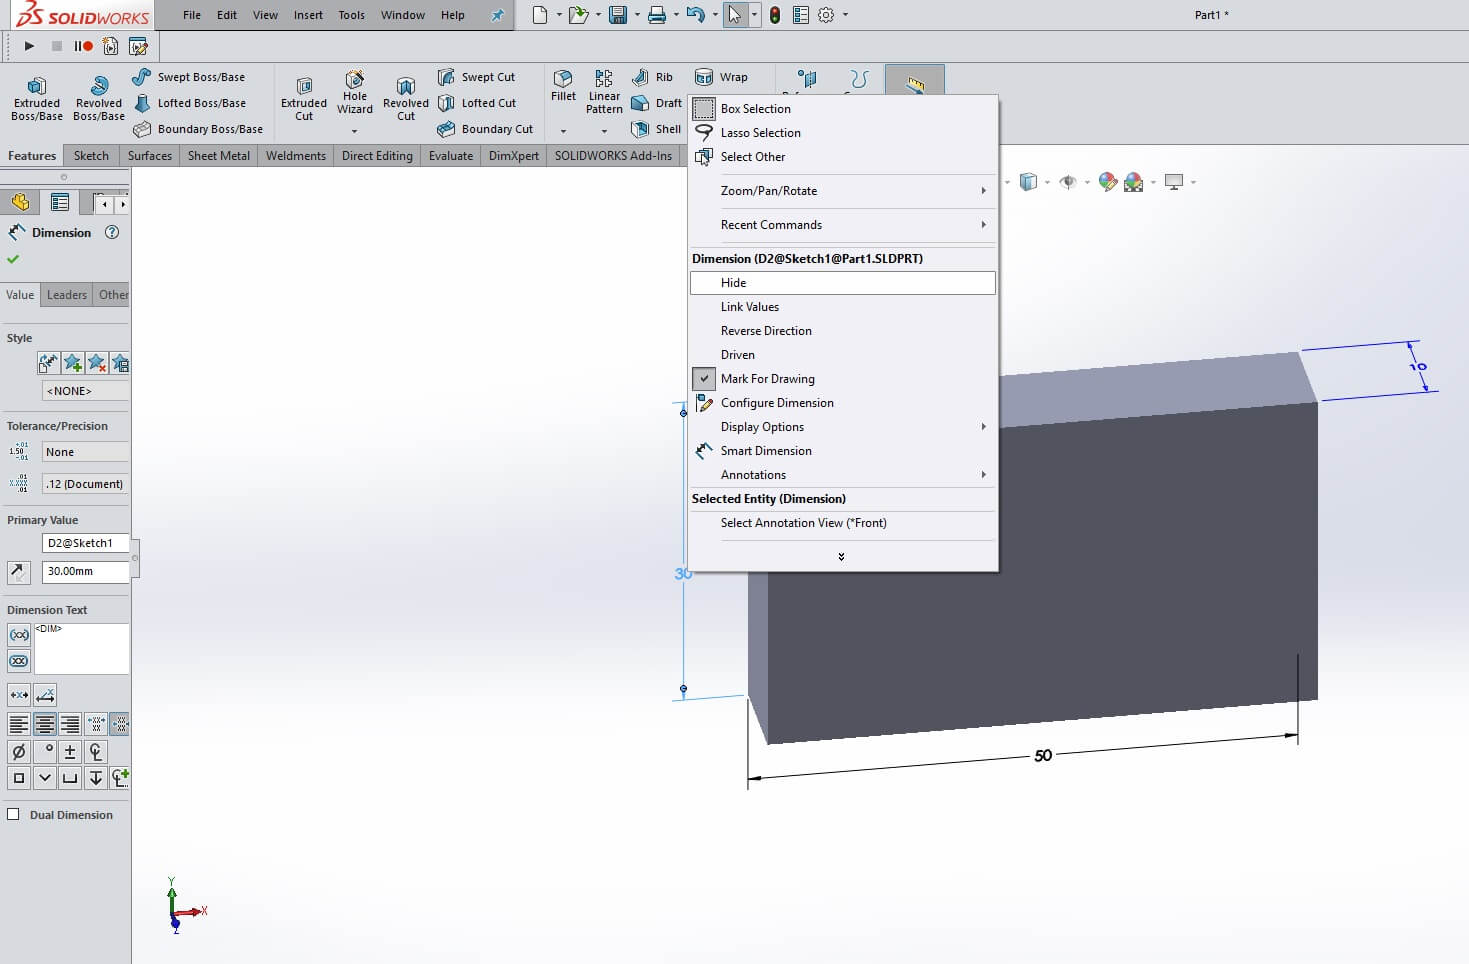 Hide SOLIDWORKS Dimension